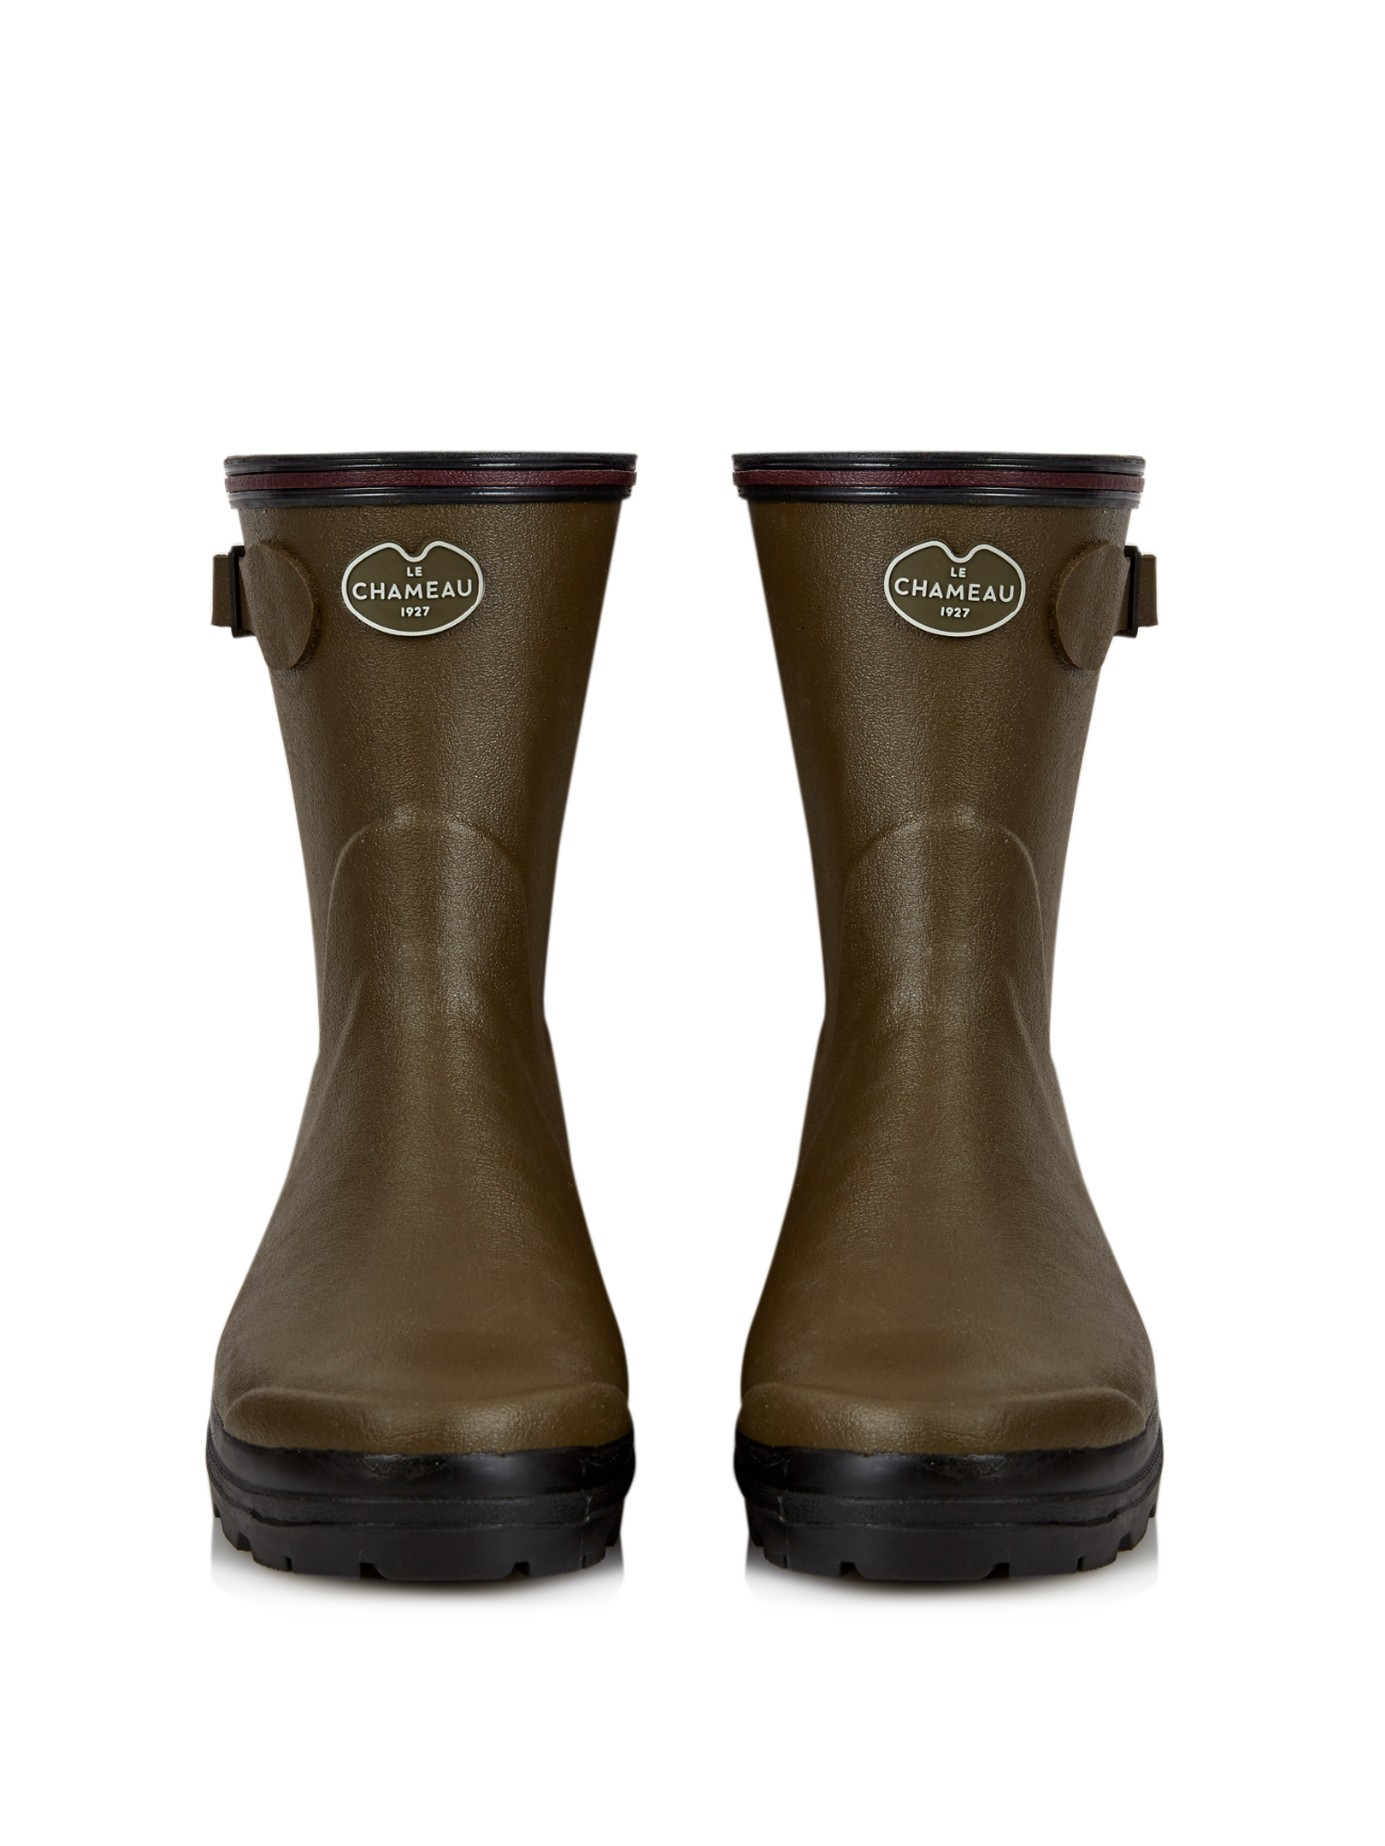 f43d1eef4 Le Chameau Giverny Low Rubber Boots in Green - Lyst